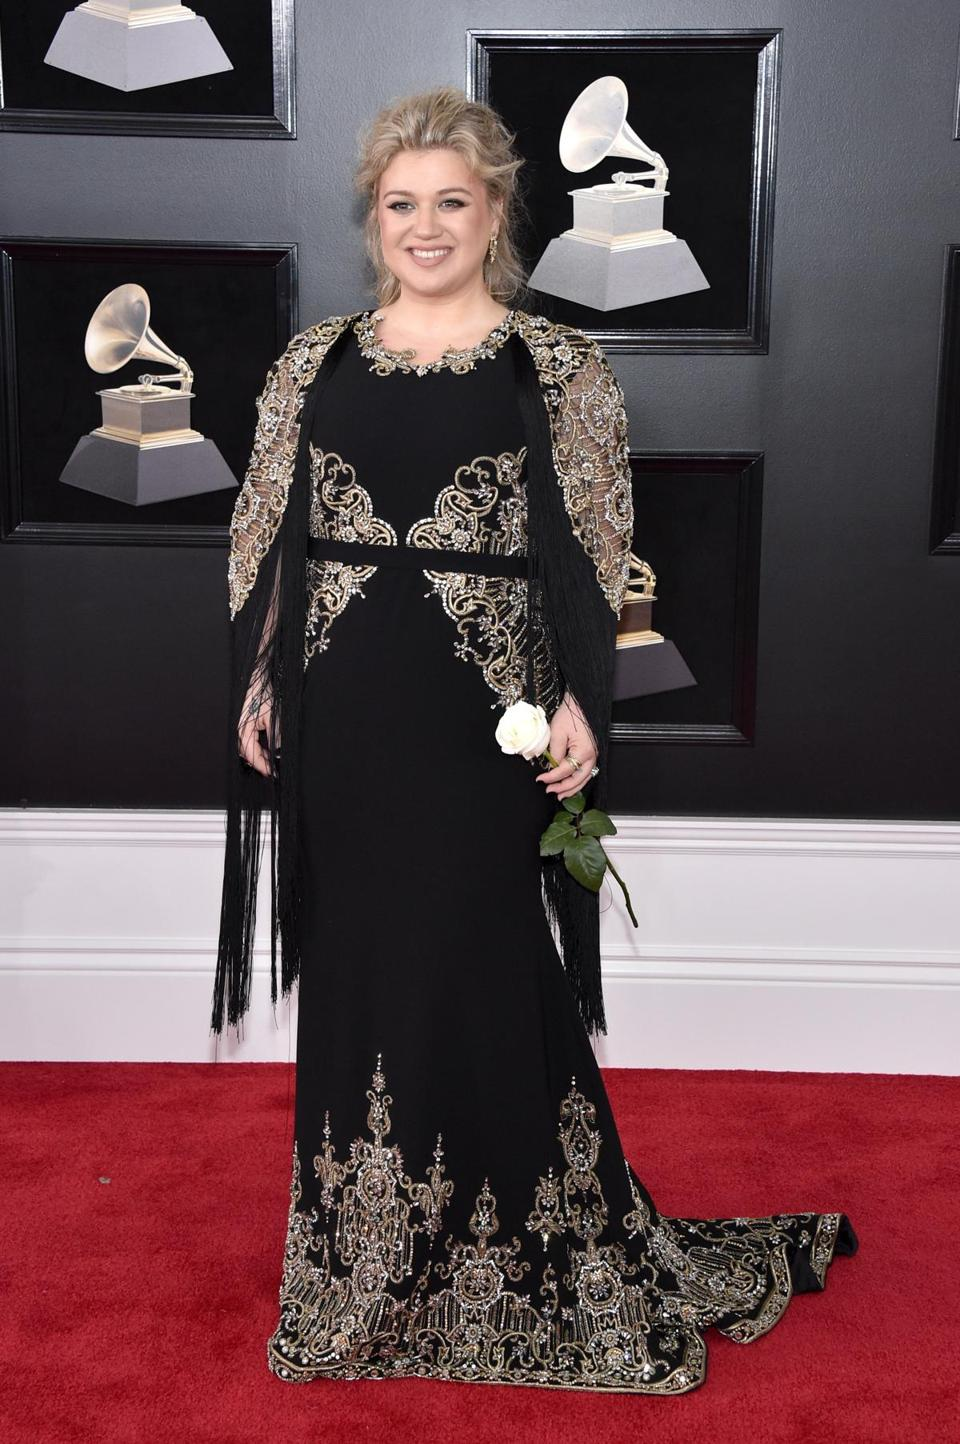 NEW YORK, NY - JANUARY 28: Reording artist Kelly Clarkson attends the 60th Annual GRAMMY Awards at Madison Square Garden on January 28, 2018 in New York City. (Photo by John Shearer/Getty Images)